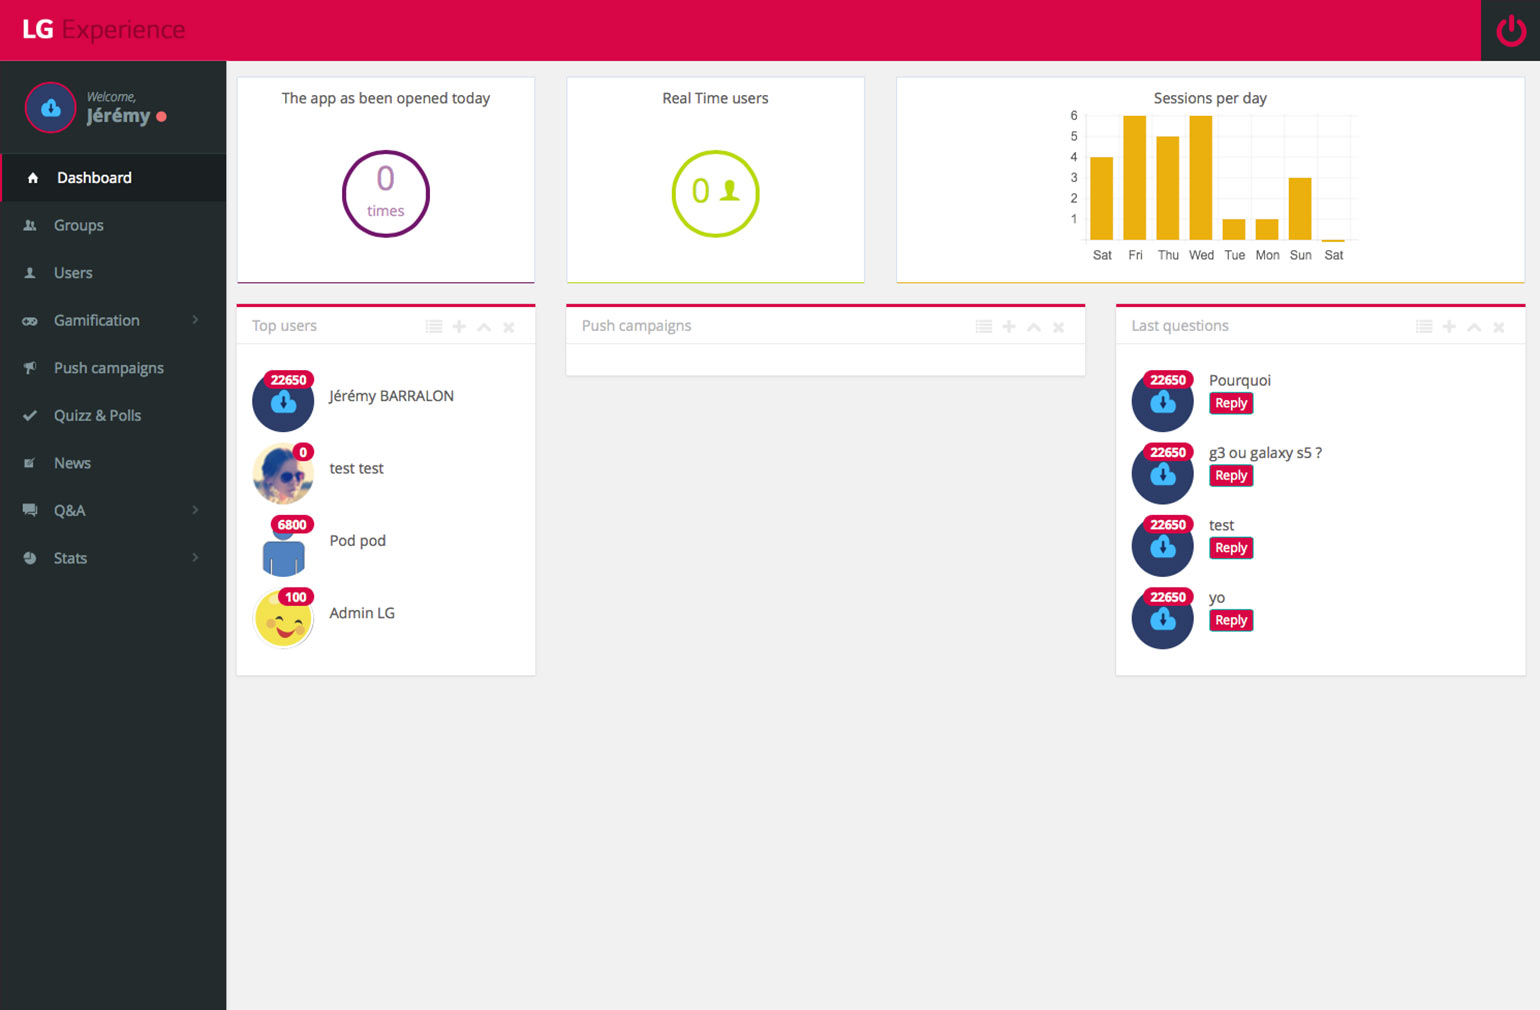 LG Experience Dashboard